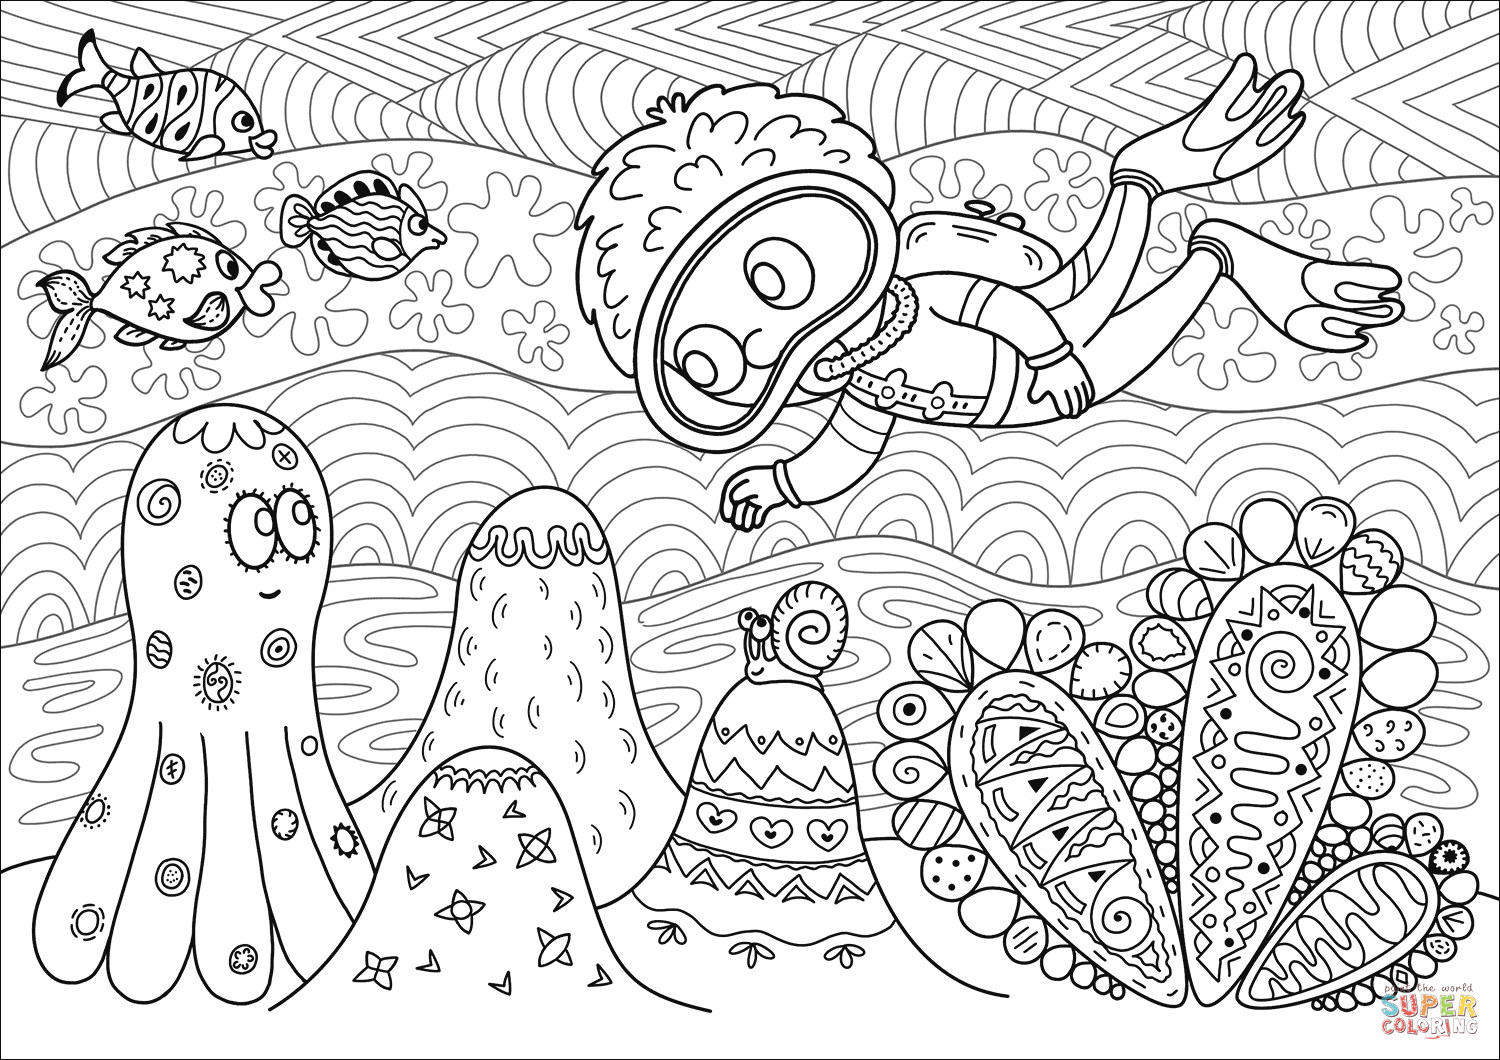 Diver Observing Coral Reef Coloring Page